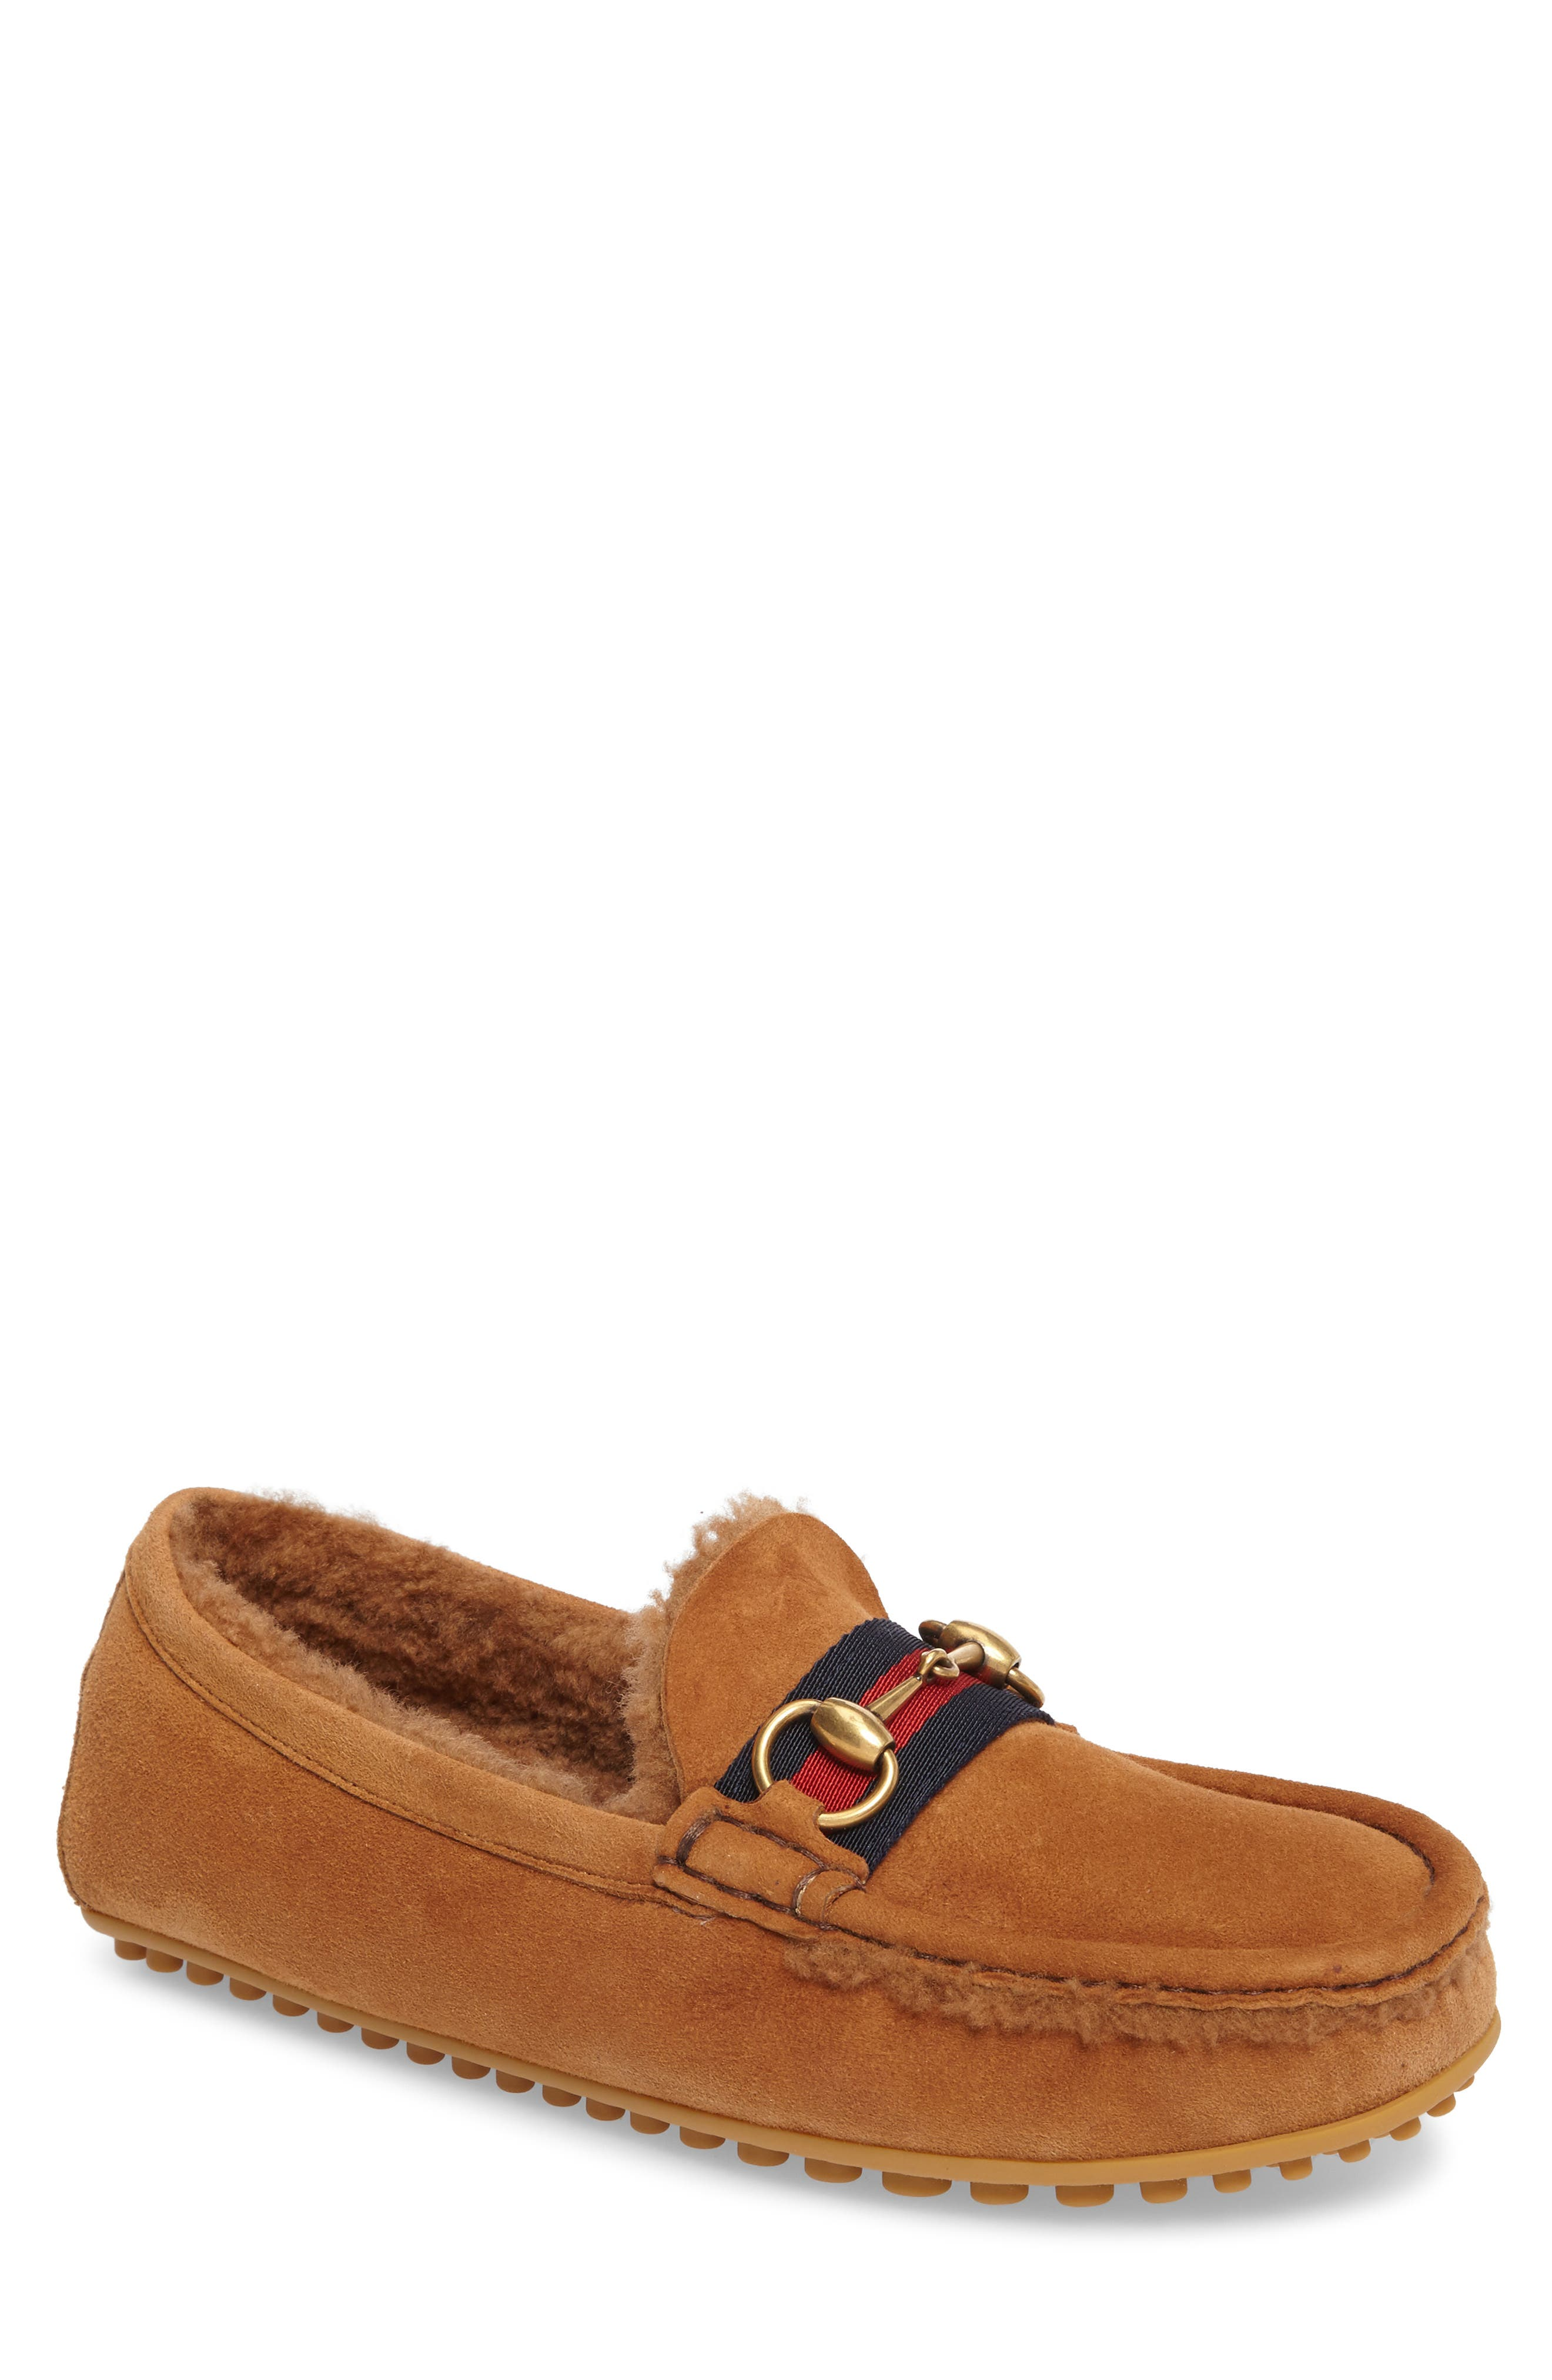 Driving Shoe with Genuine Shearling,                         Main,                         color, 249